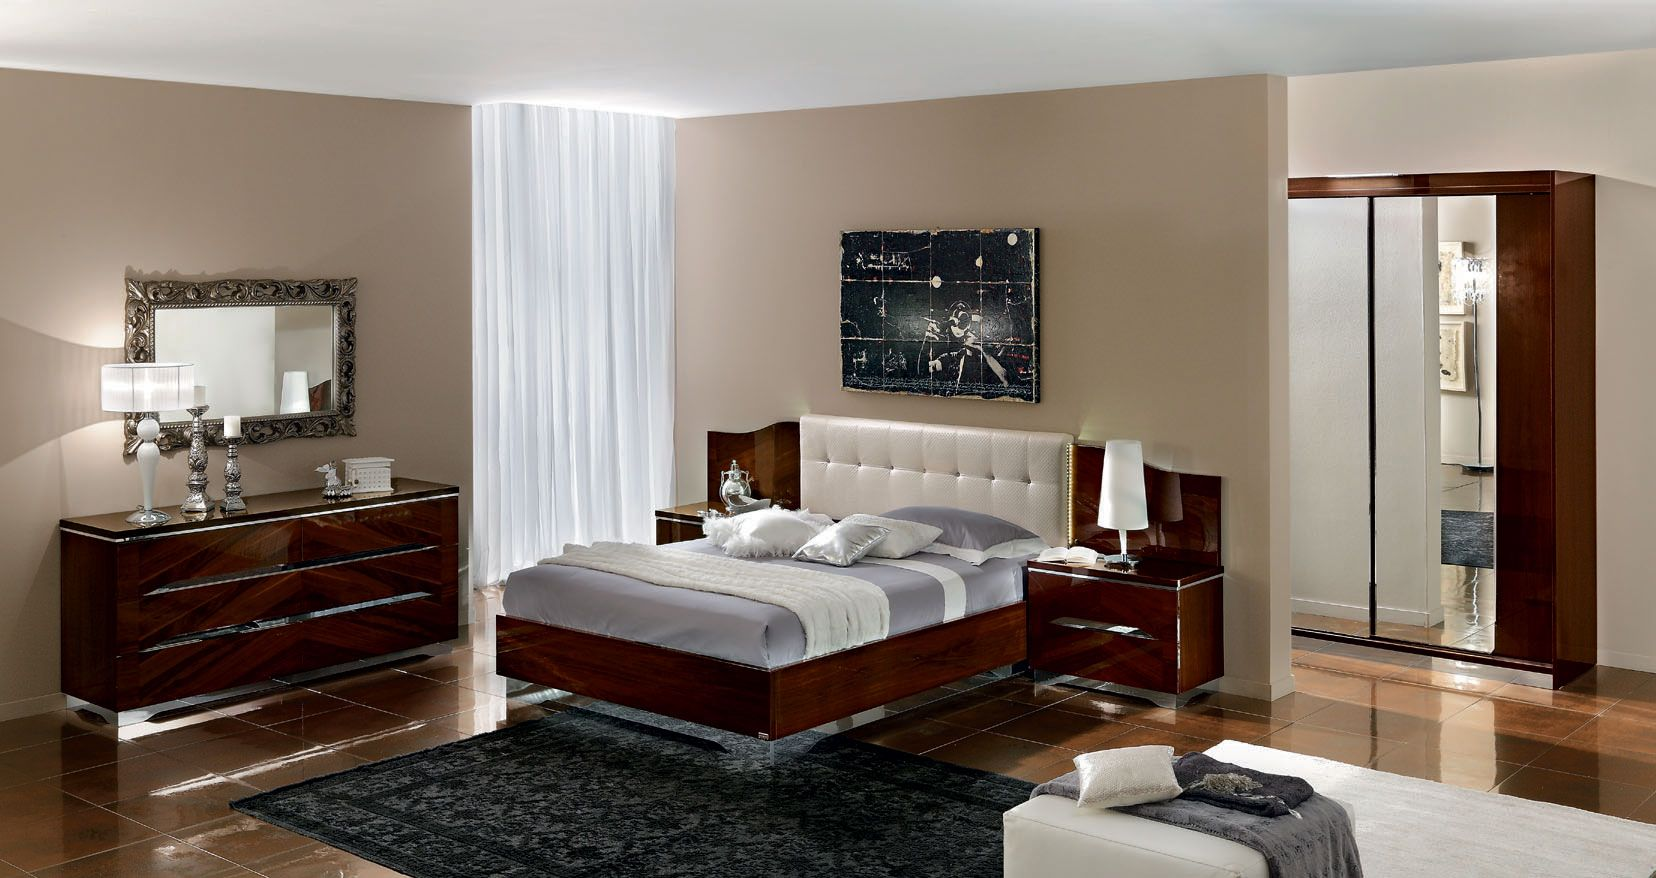 Bedroom Furniture Sets With Camel Bedrooms Rossella White Wooden .